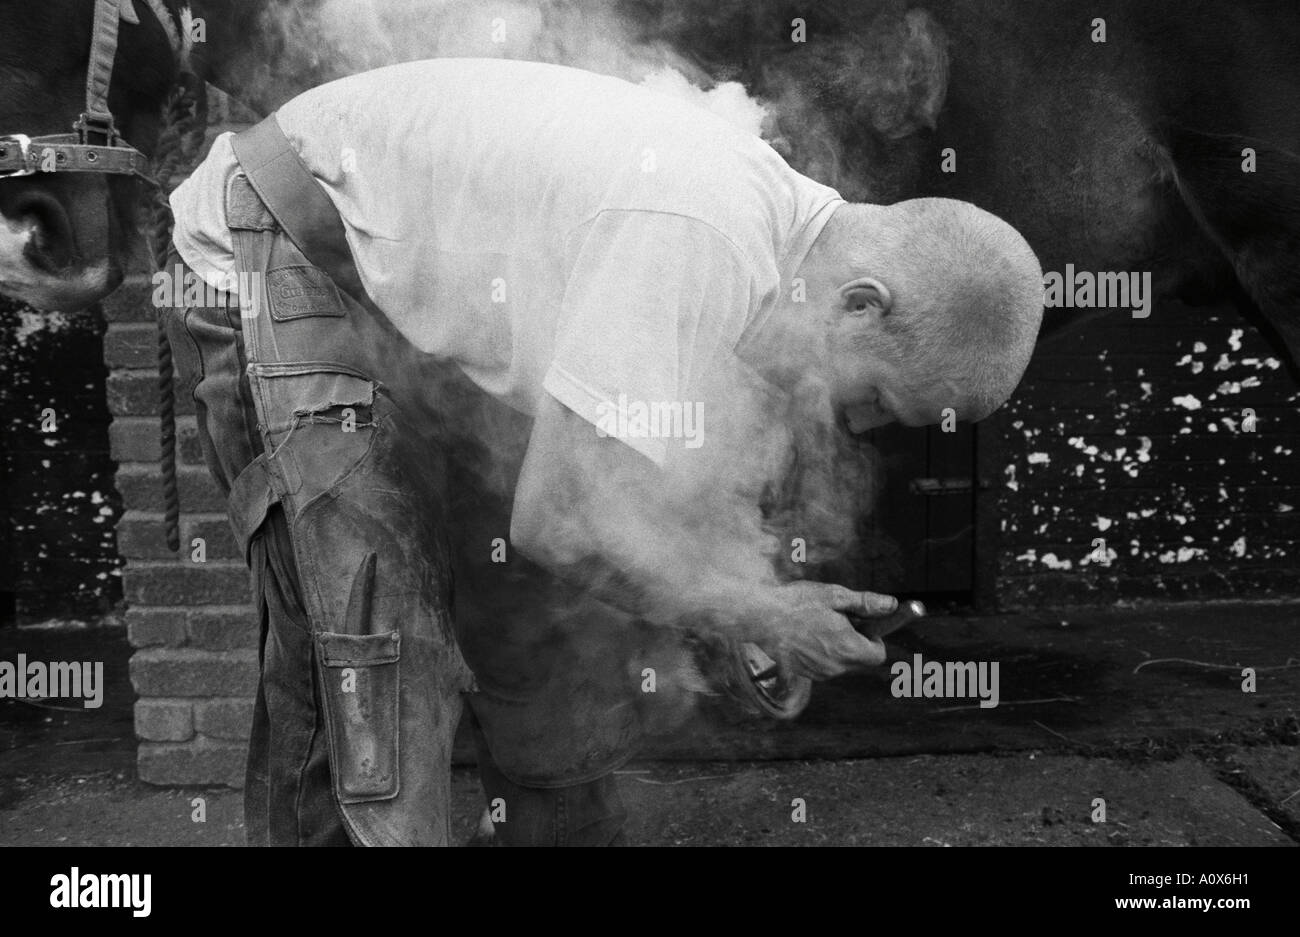 London, UK. Farrier shoeing a horse - Stock Image